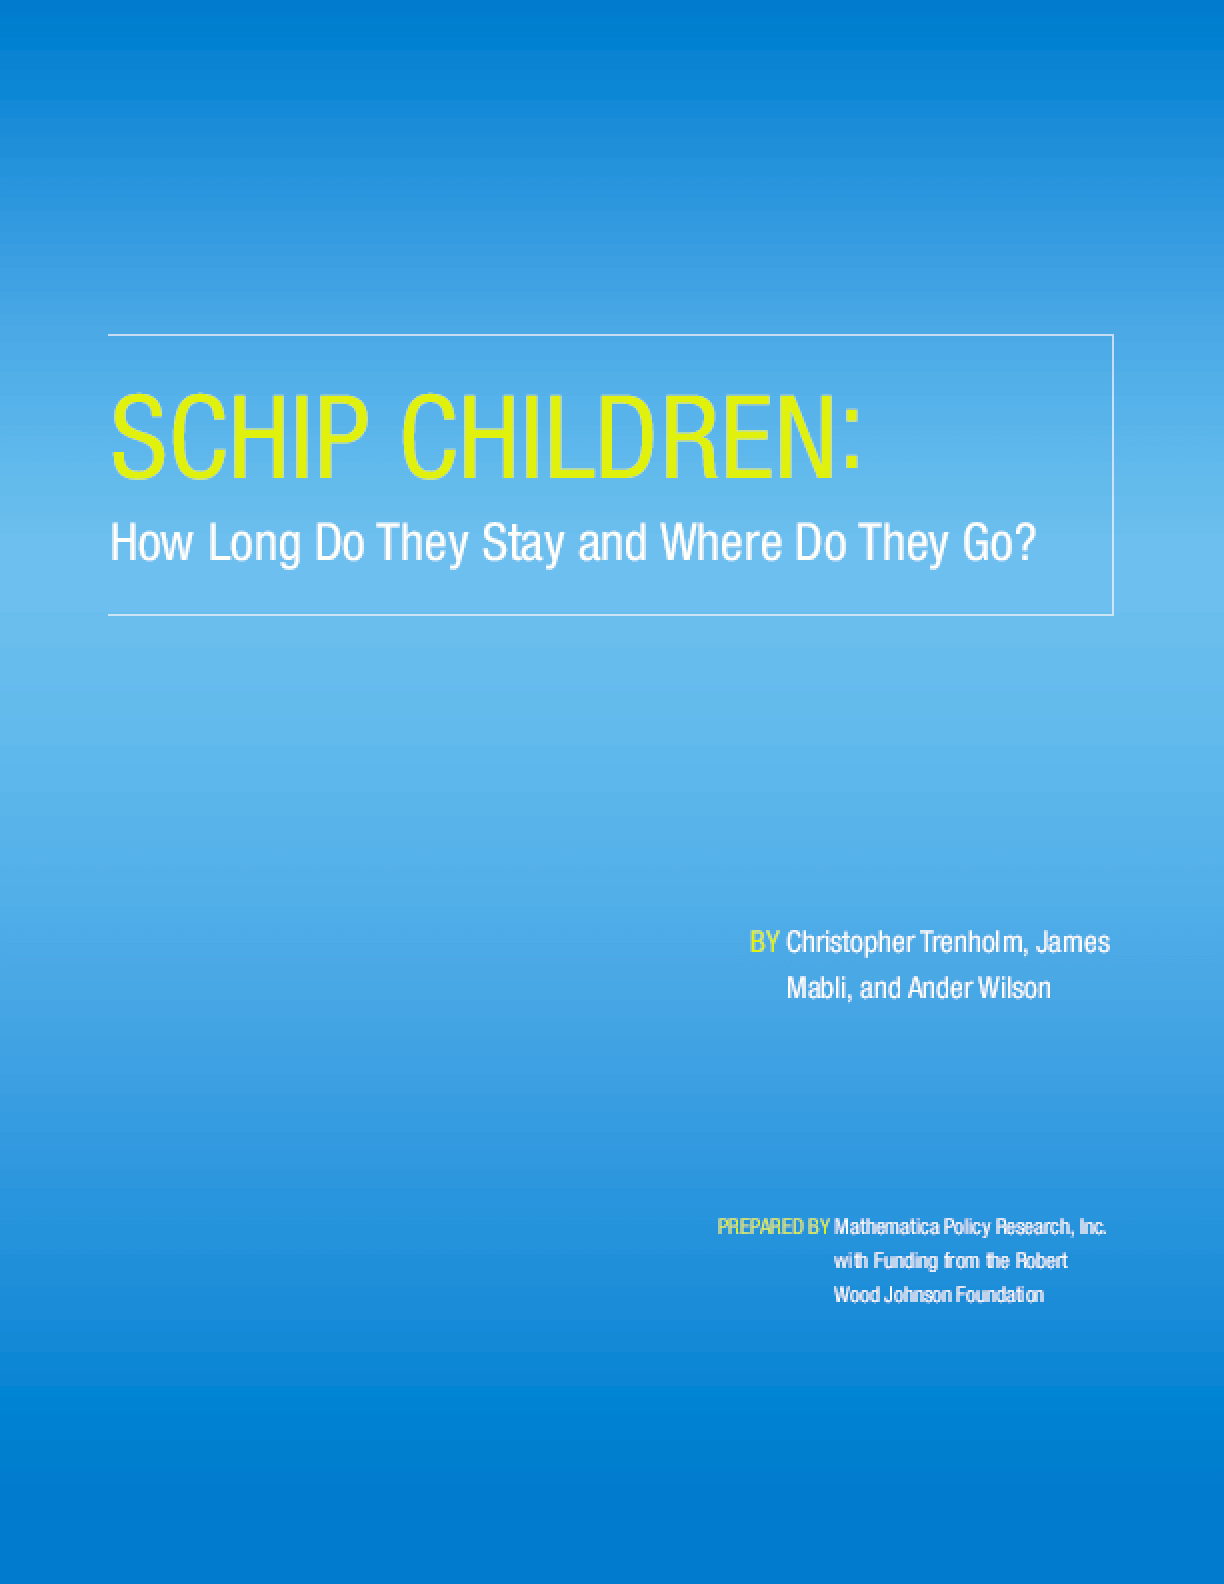 SCHIP Children: How Long Do They Stay and Where Do They Go?